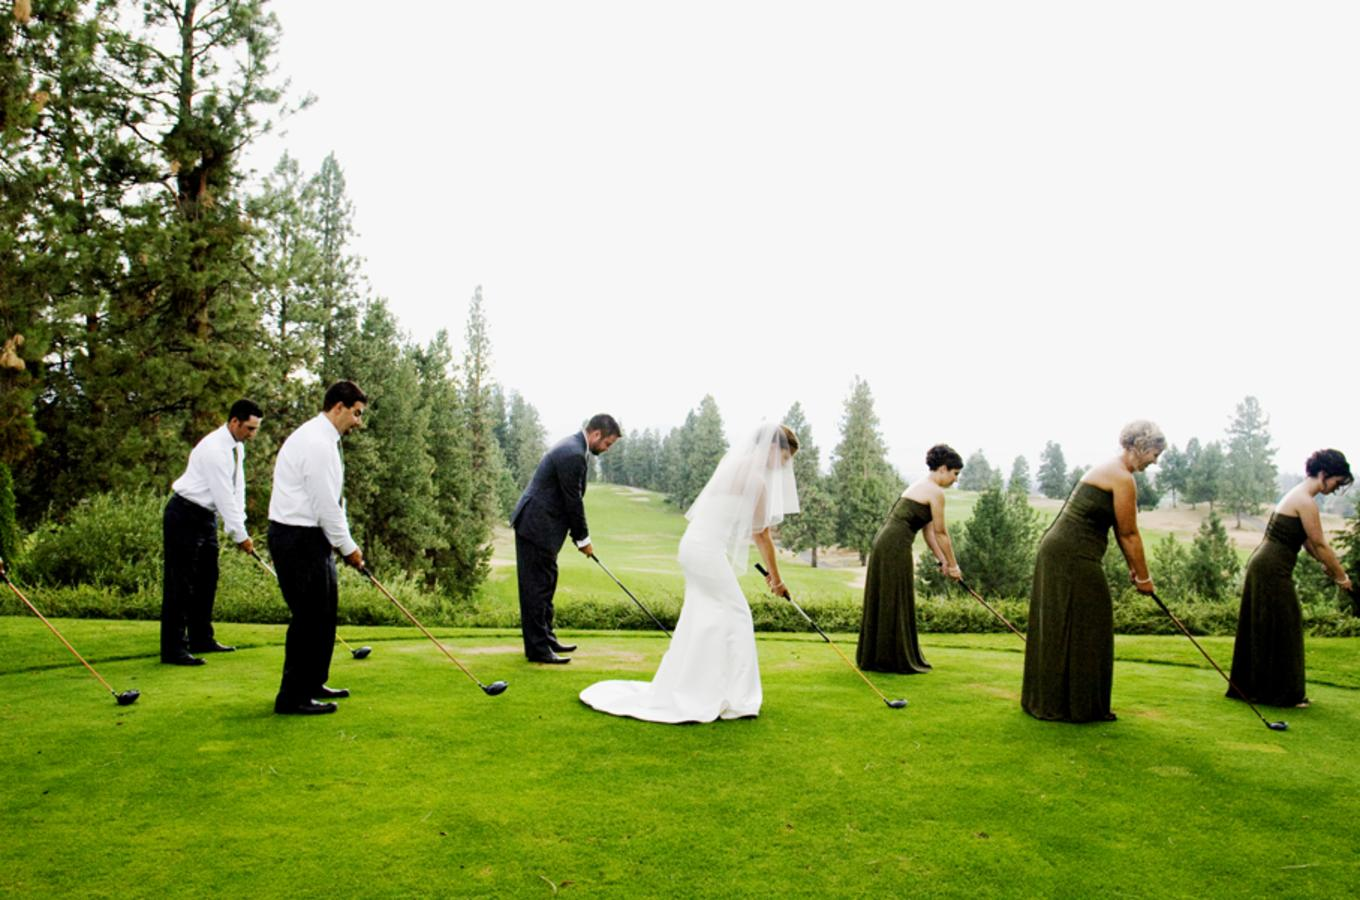 Gallagher's Canyon - Weddings & Events Image 7